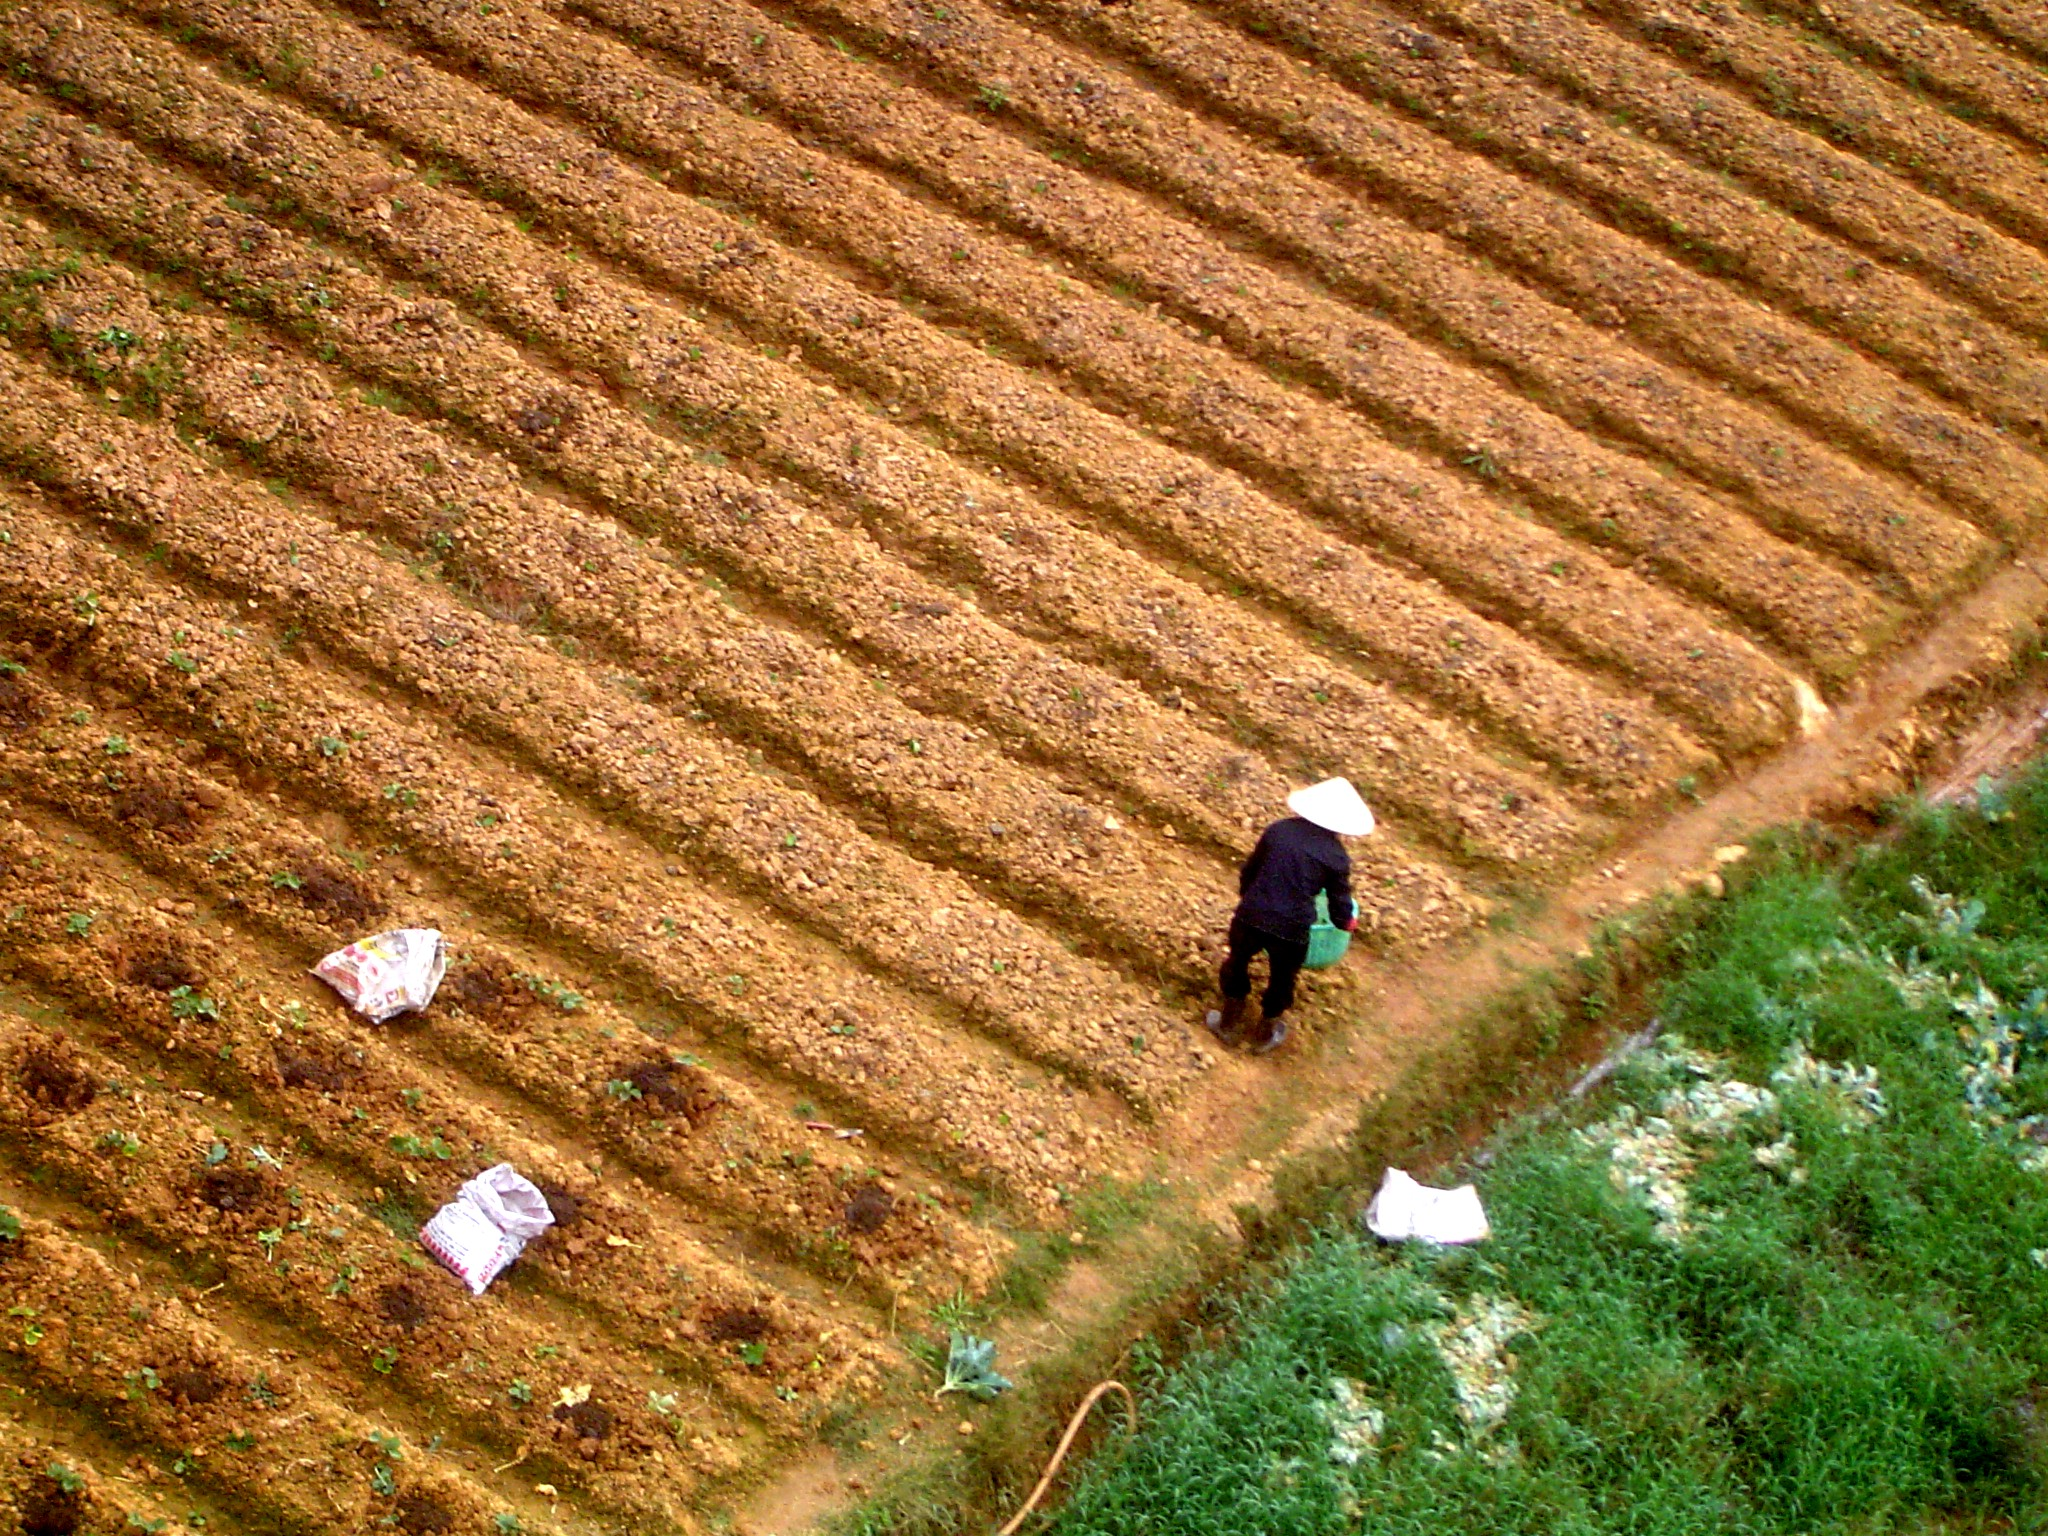 parable of the sower and stewardship considering stewardship